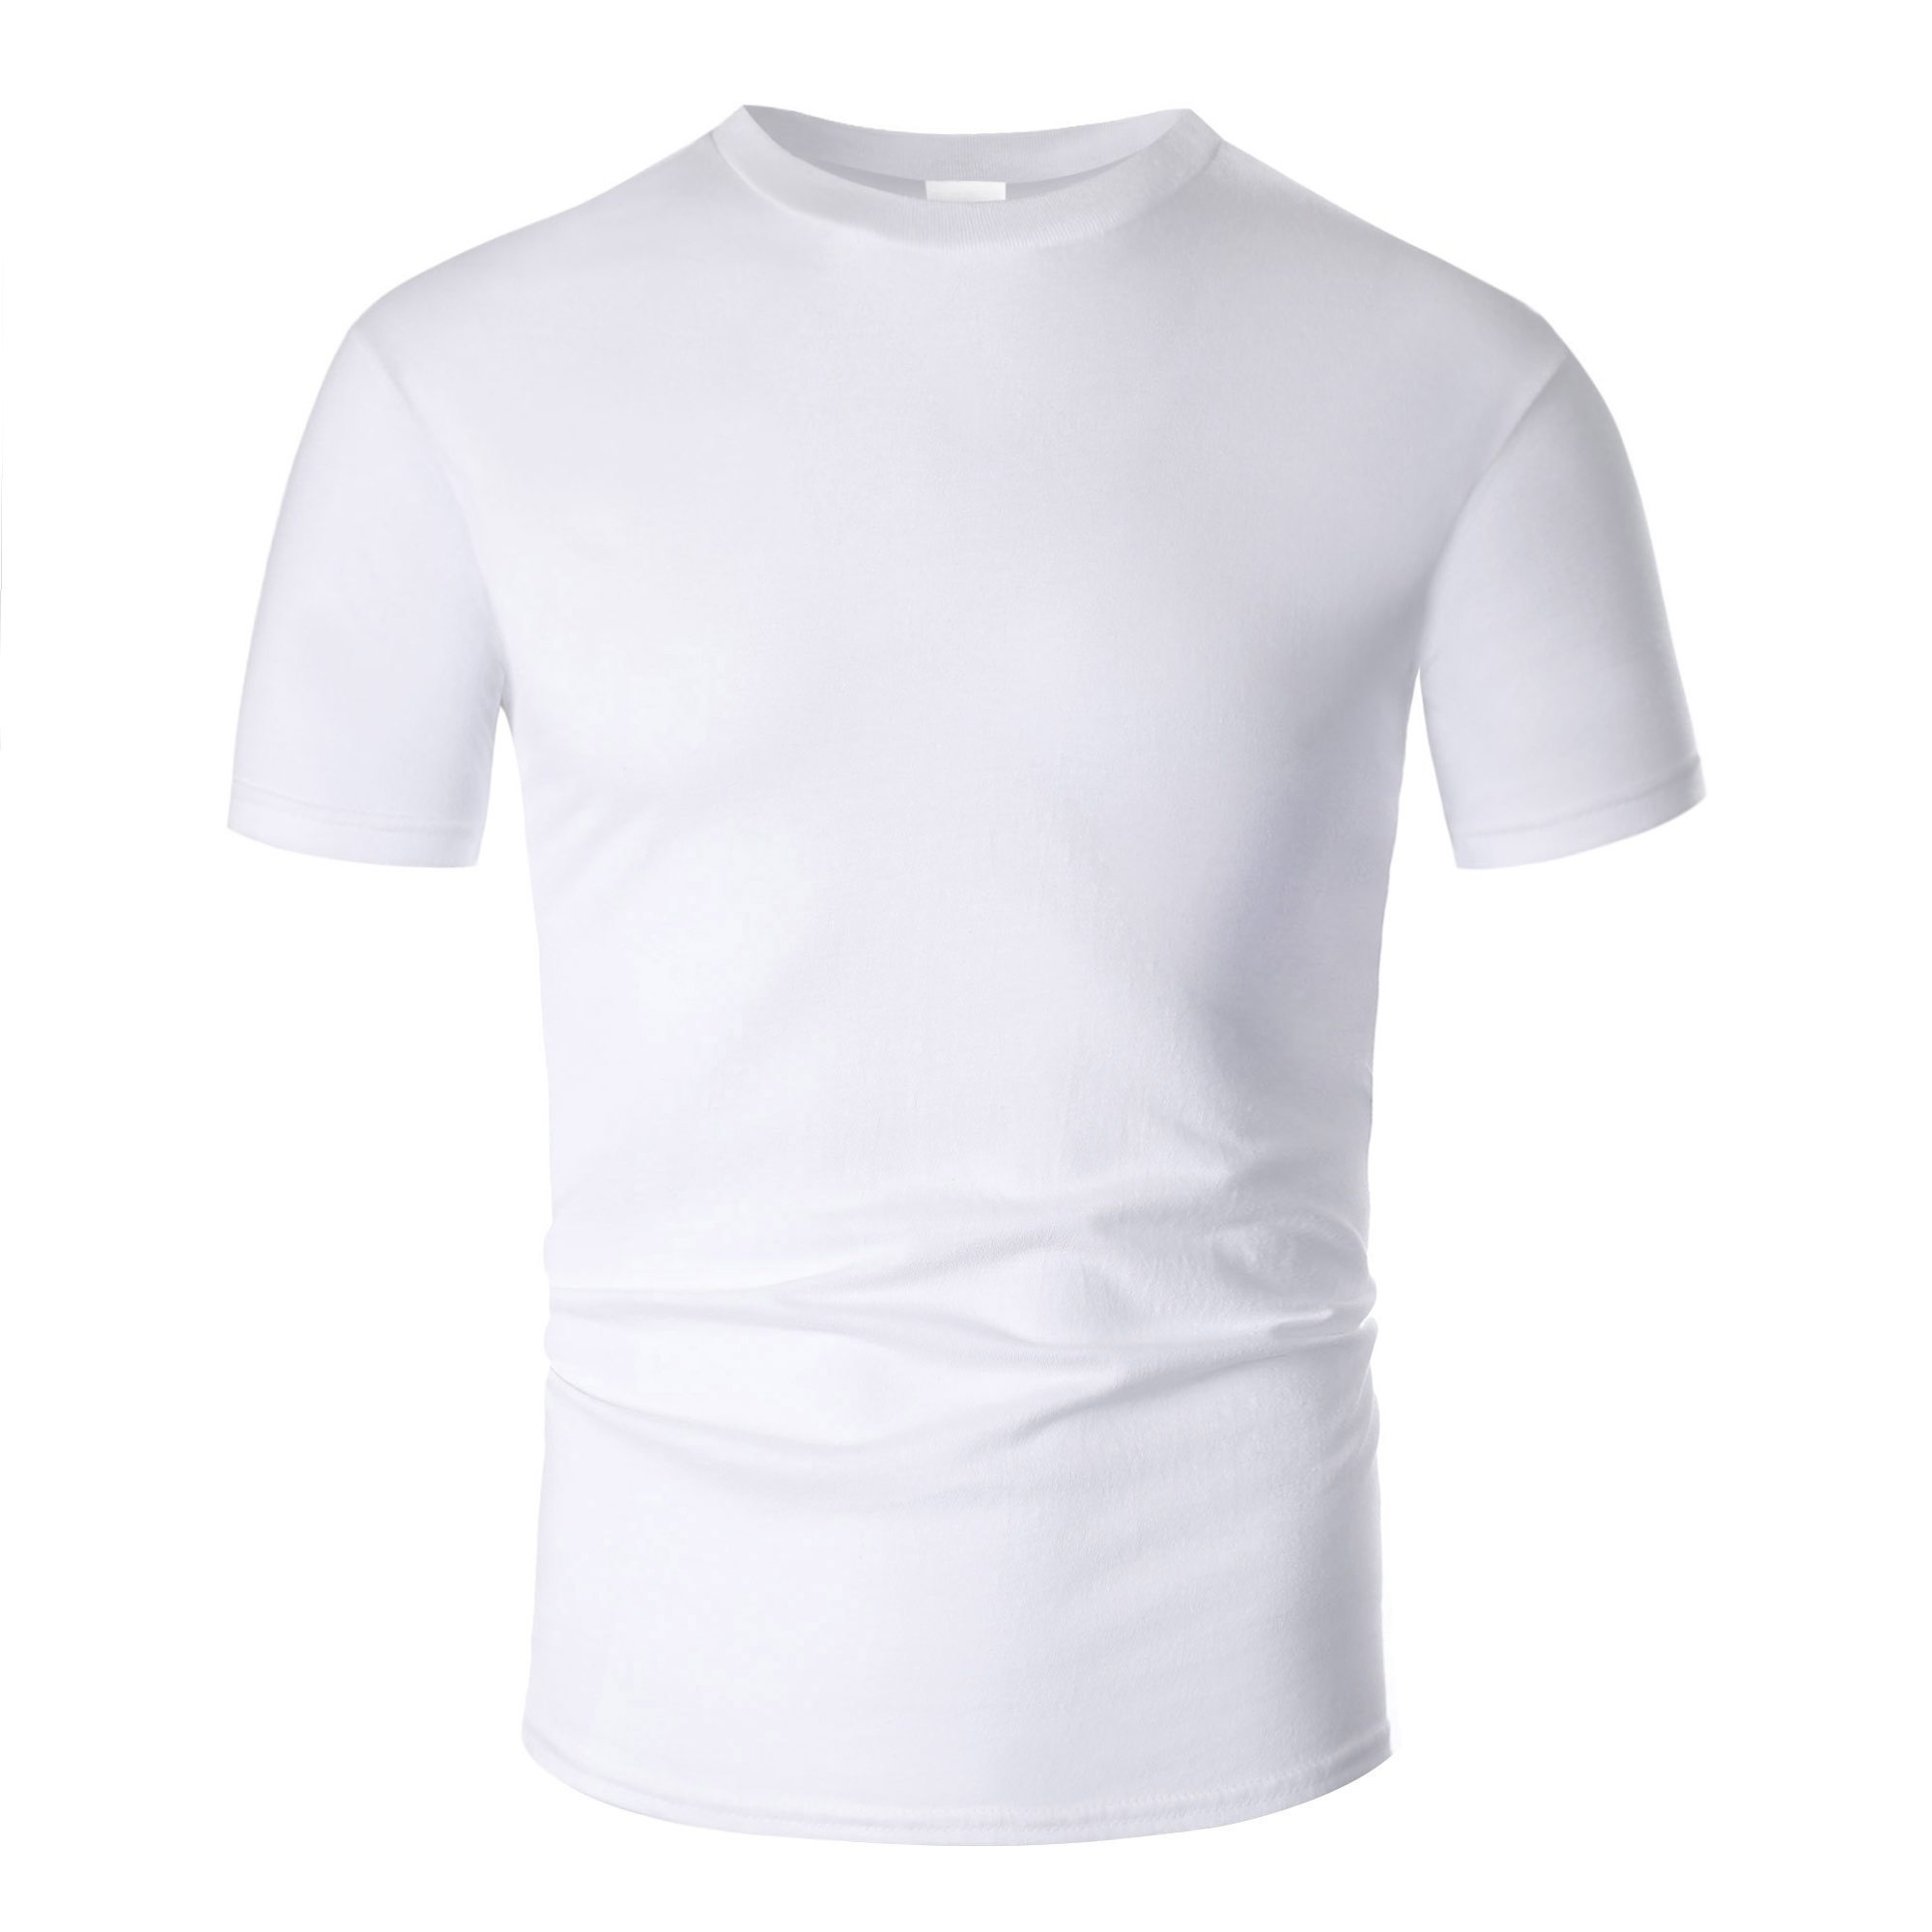 Pure Color T-shirt Without Logo Special Link  Lowest Price.